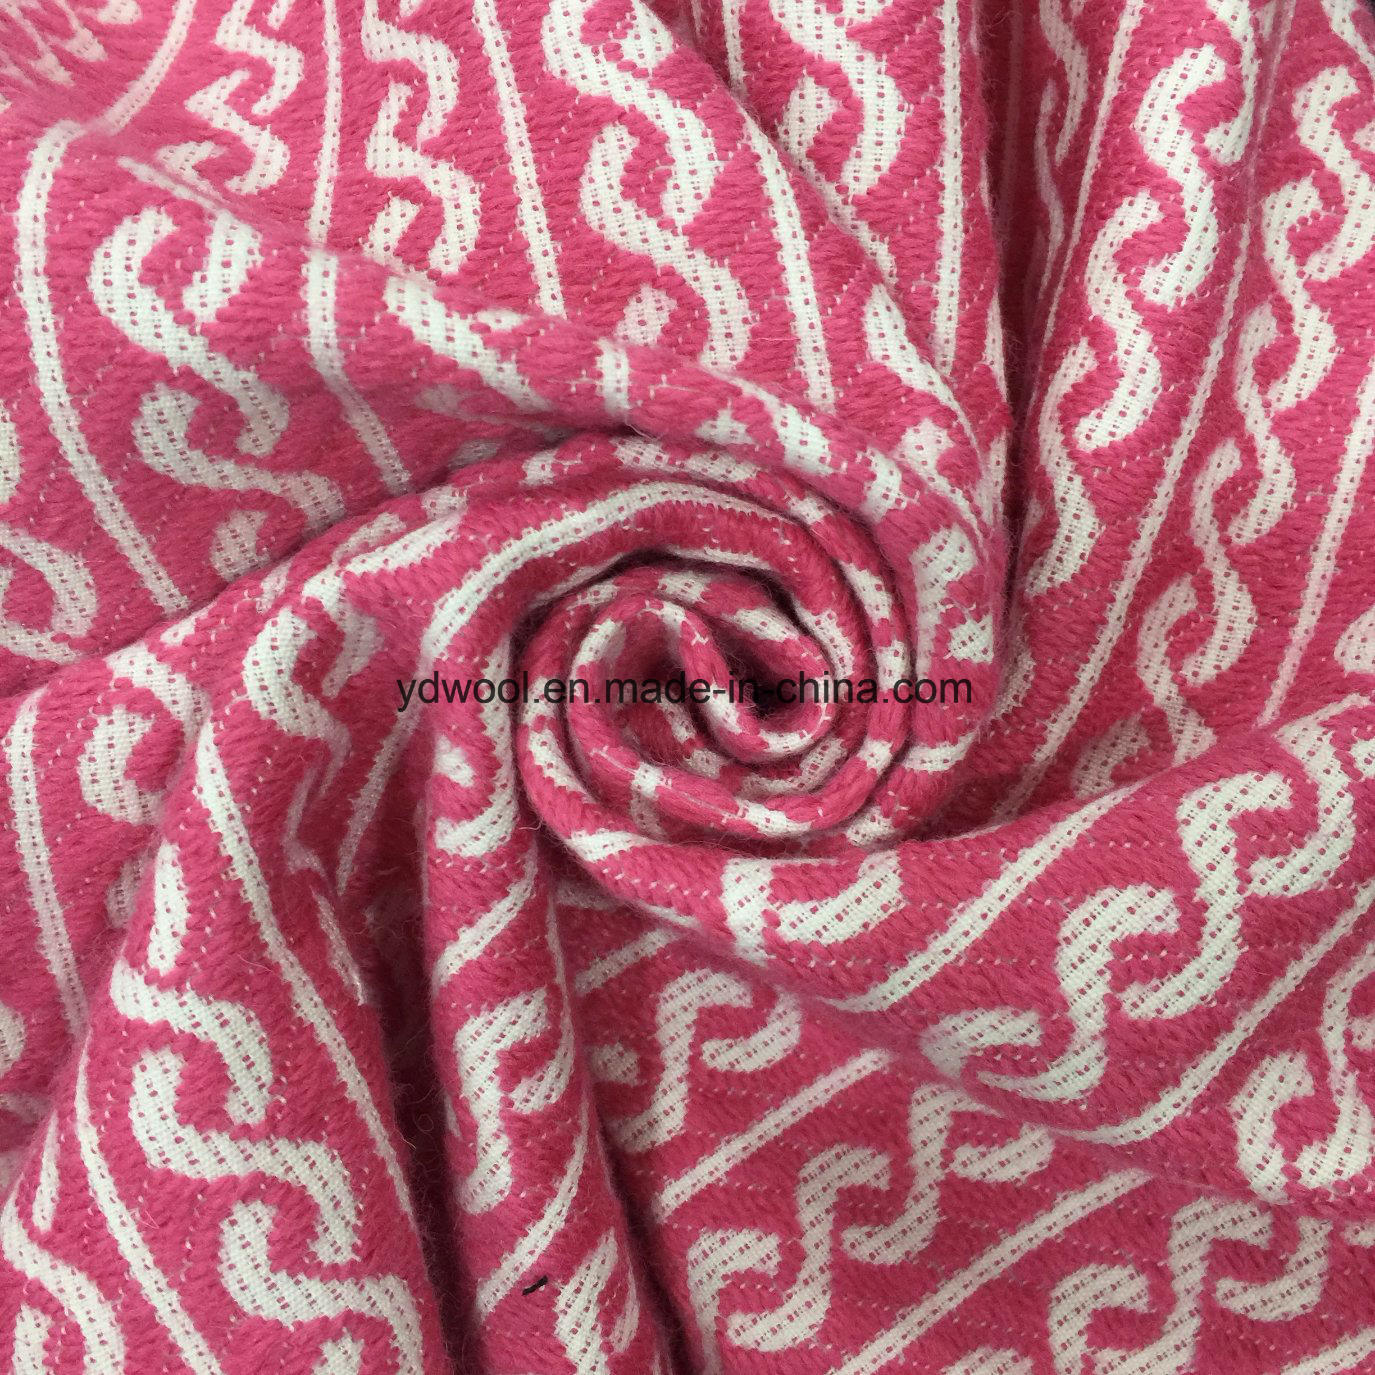 Spiral Styles Jacquard Wool Fabric Ready Greige